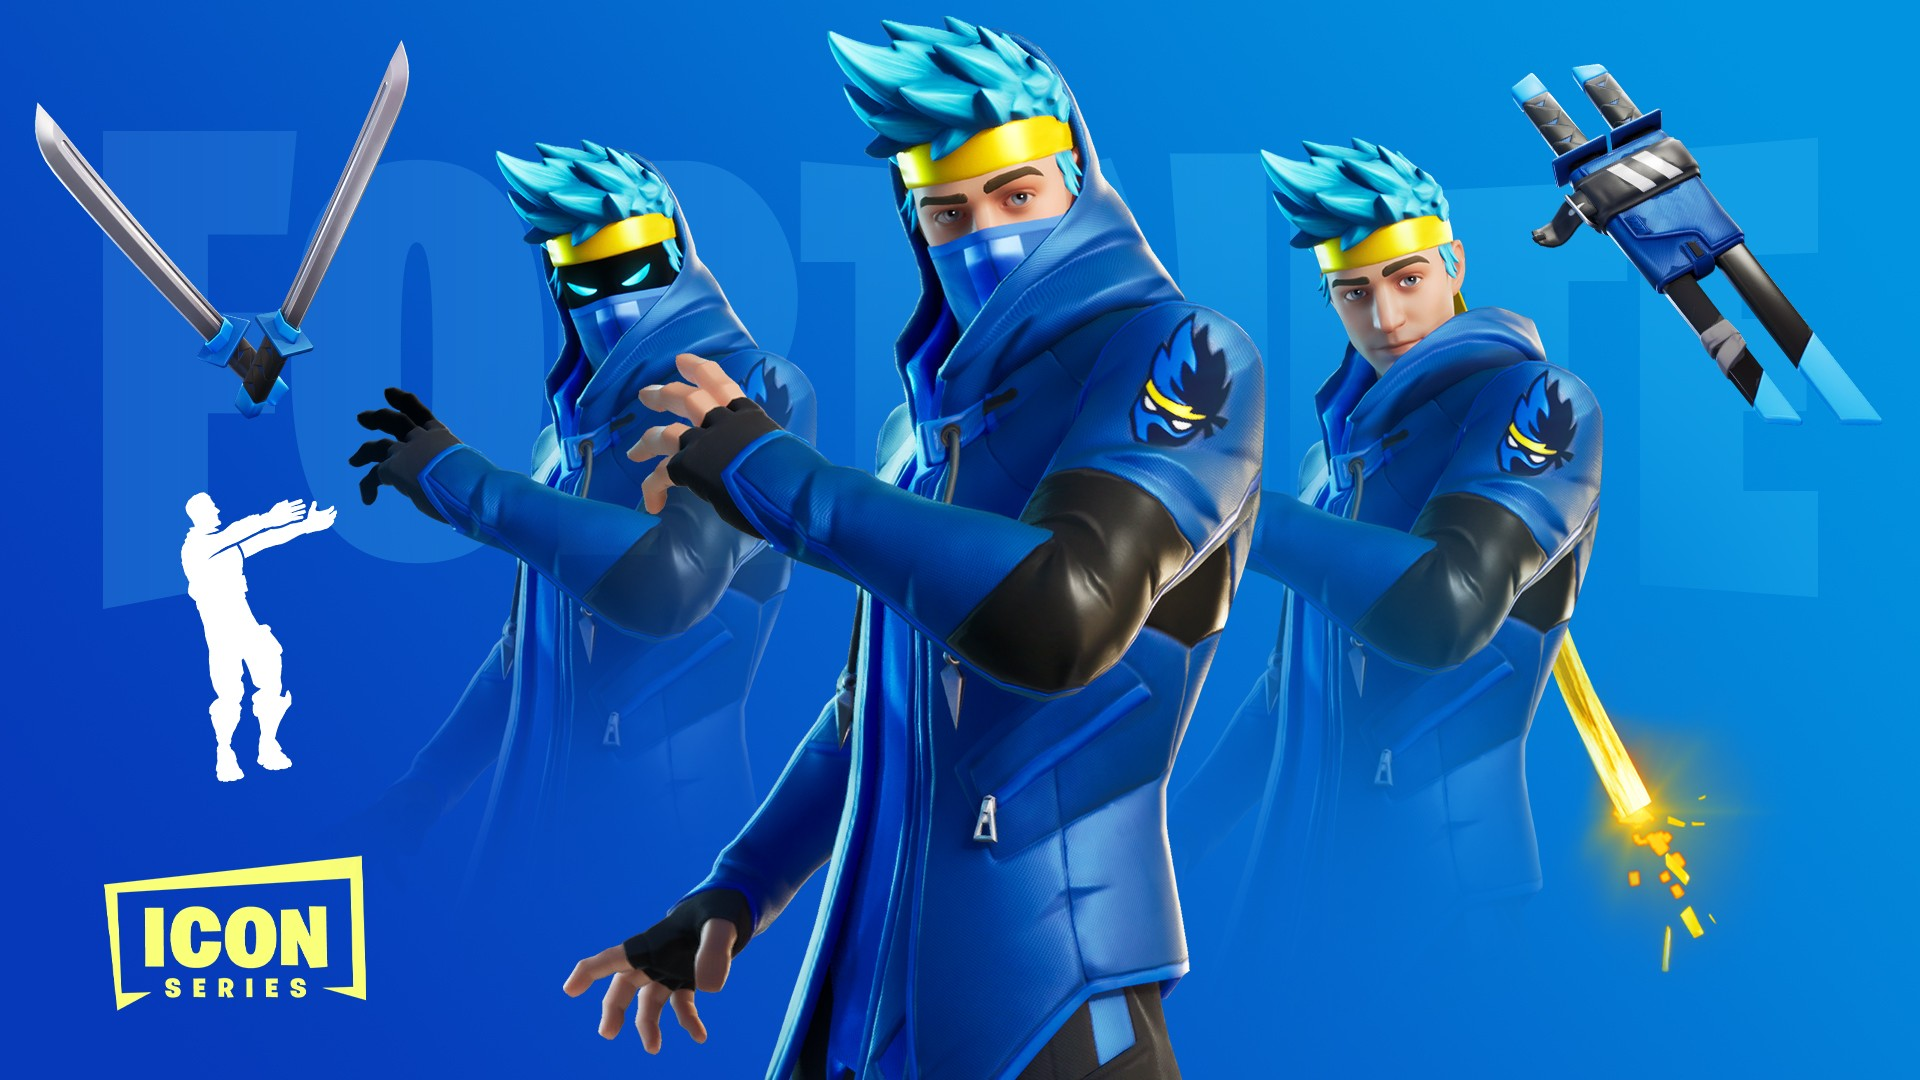 How Many Fortnite Icon Skins Are There The Ninja Set The First Of Fortnite S Icon Series Leaves The Shop Tonight Inven Global